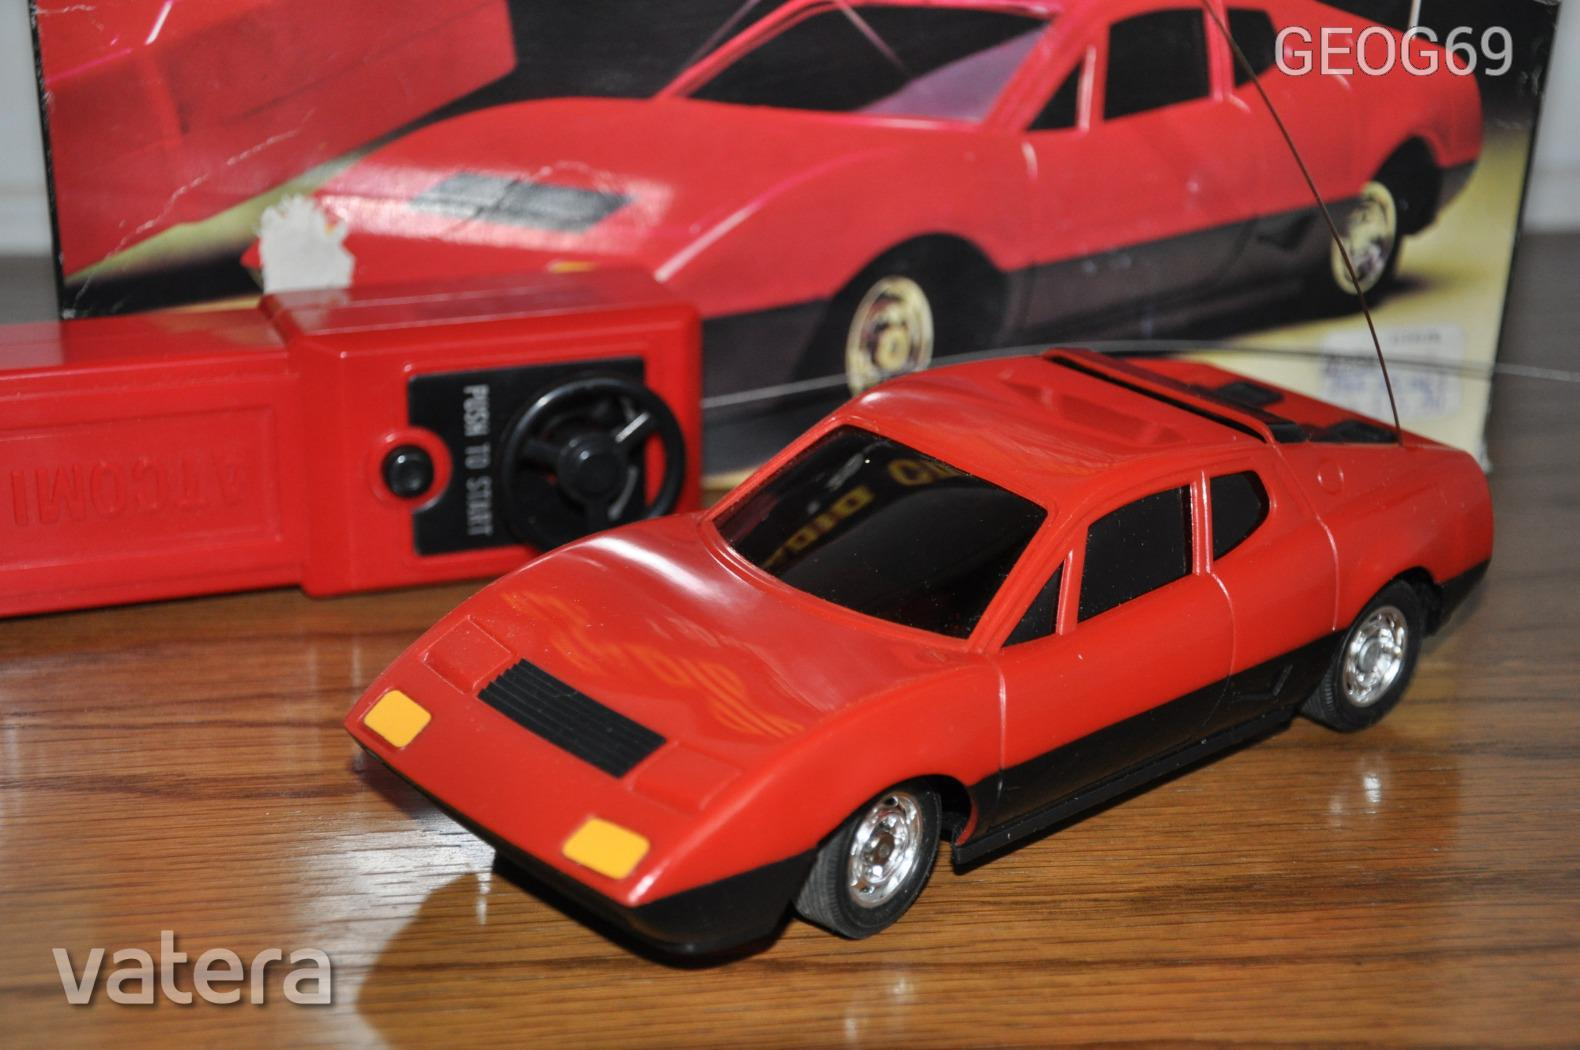 asahi-ferrari-512-bb-1-20-radio-controlled-car-1970-es-evekbol-made-in-japan-7e7a_2_big.jpg